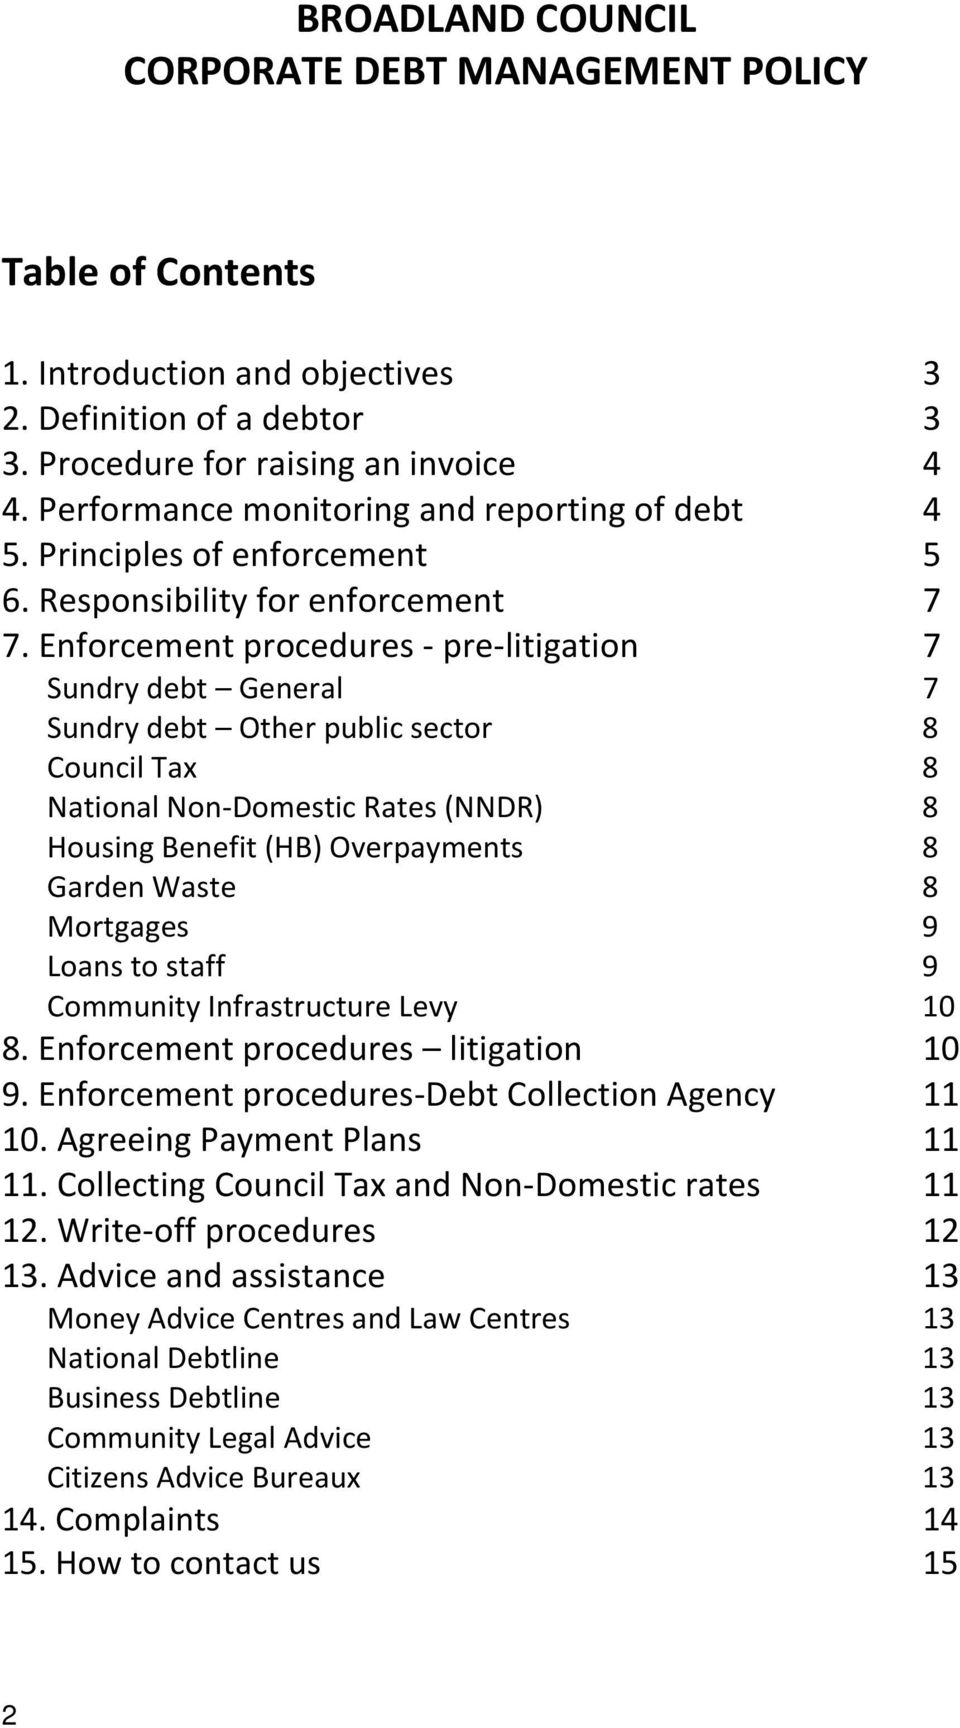 Enforcement procedures - pre-litigation 7 Sundry debt General 7 Sundry debt Other public sector 8 Council Tax 8 National Non-Domestic Rates (NNDR) 8 Housing Benefit (HB) Overpayments 8 Garden Waste 8